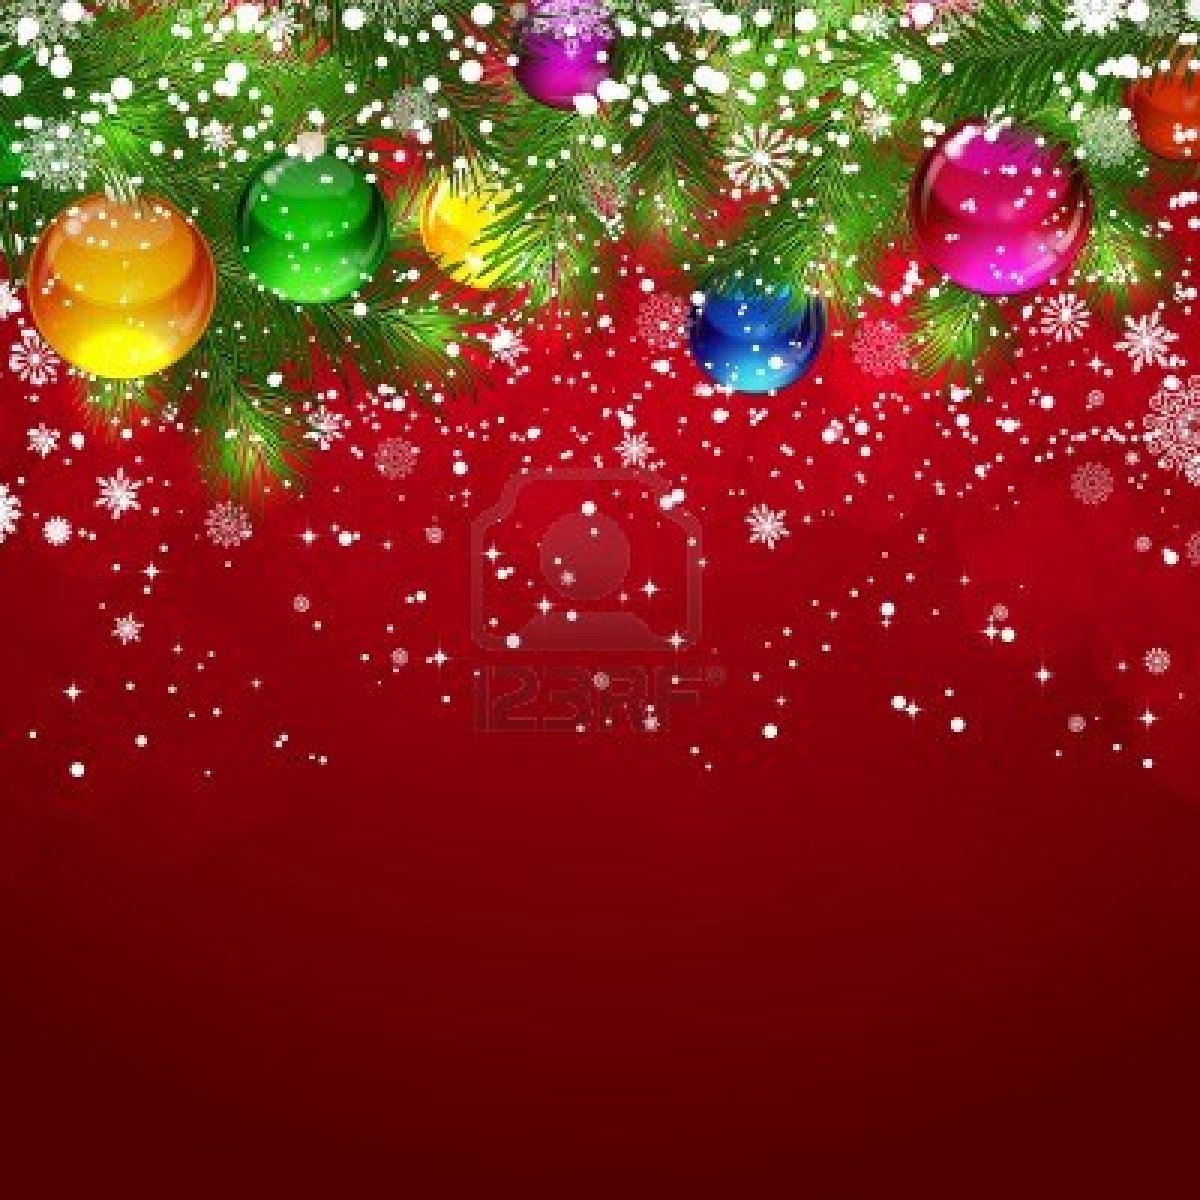 free christmas clip art to download - photo #18